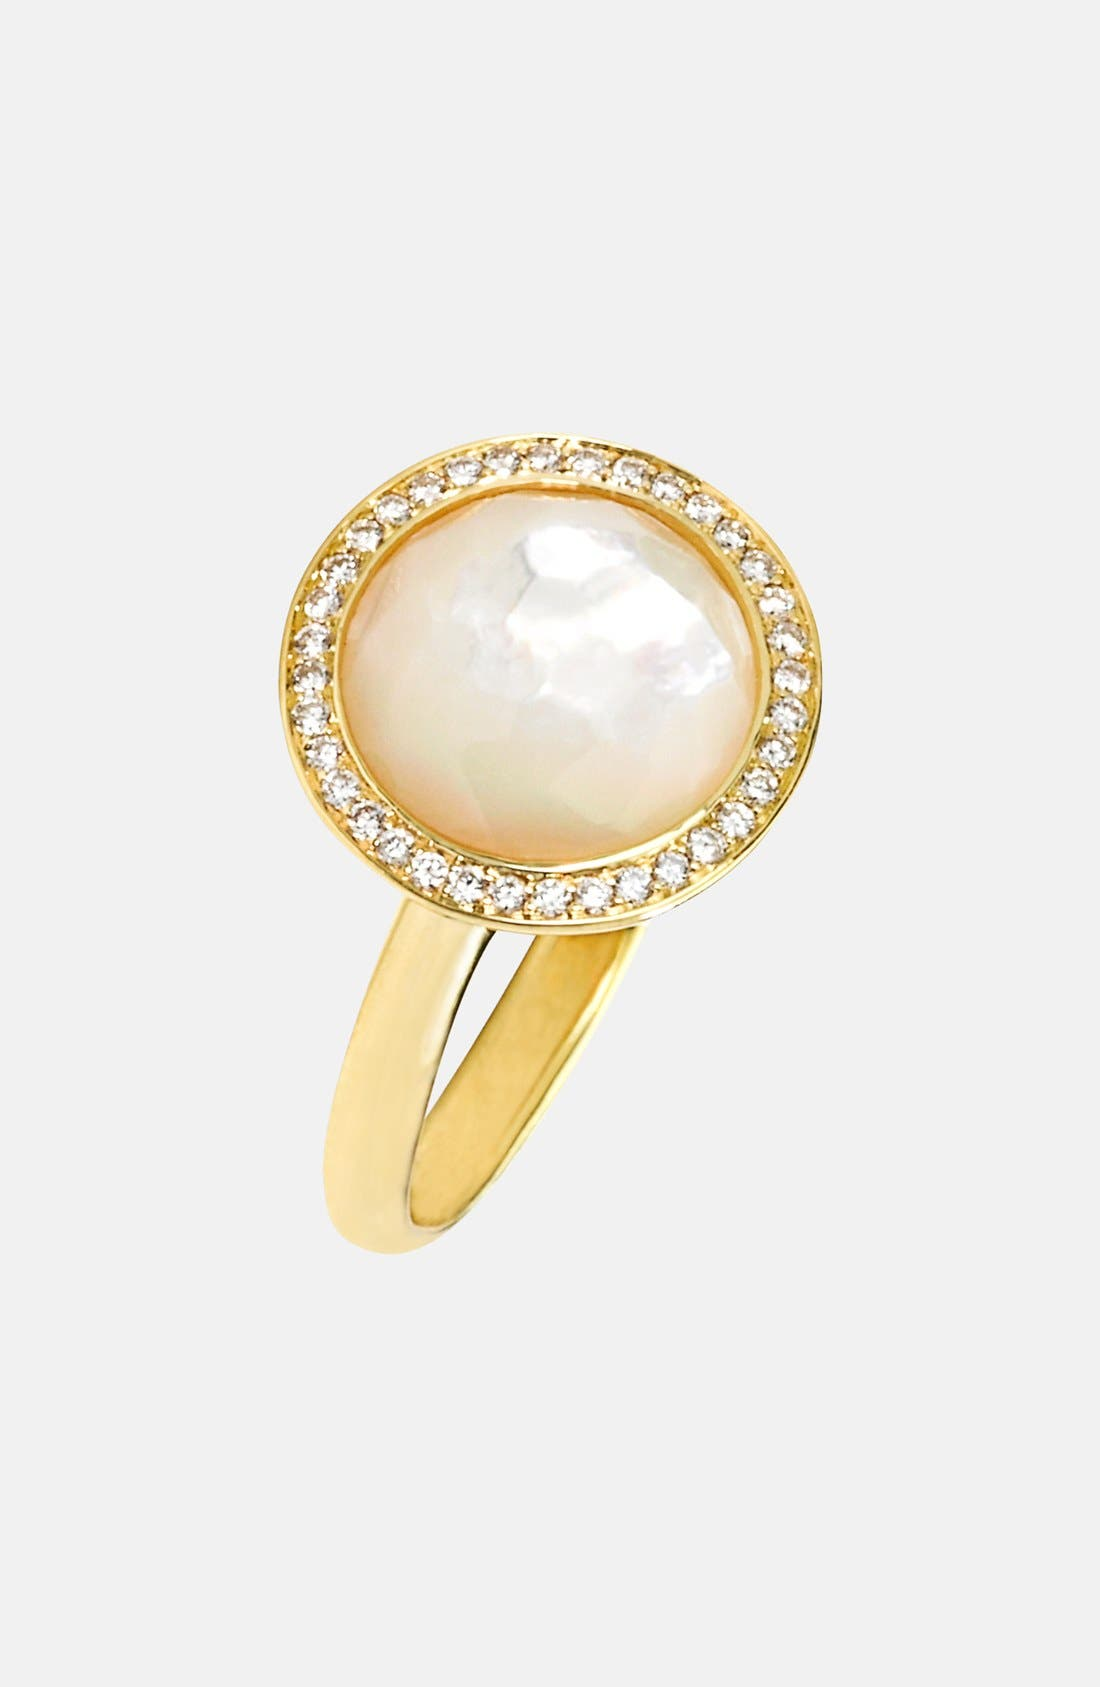 Alternate Image 1 Selected - Ippolita 'Rock Candy - Lollipop' 18k Gold Cocktail Ring with Diamonds